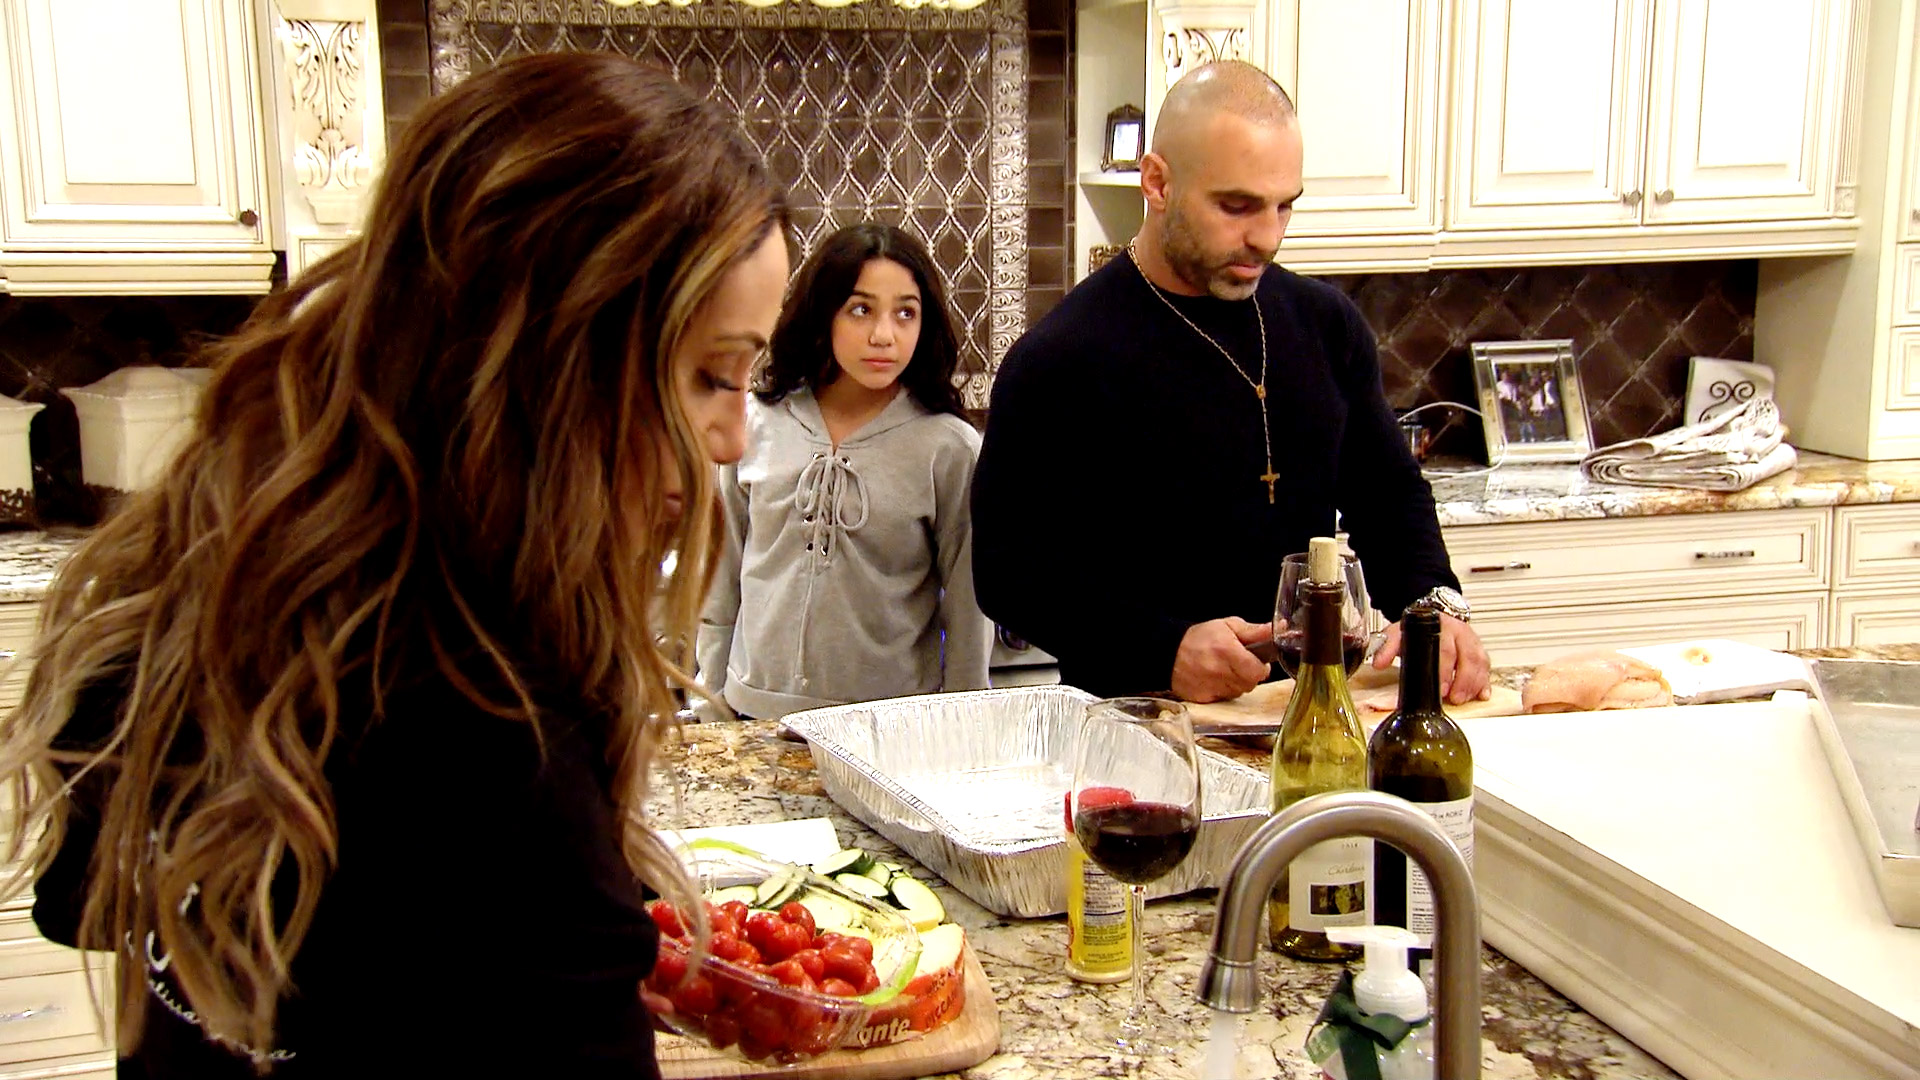 Joe Gorga Has a Double Standard When It Comes to Dating